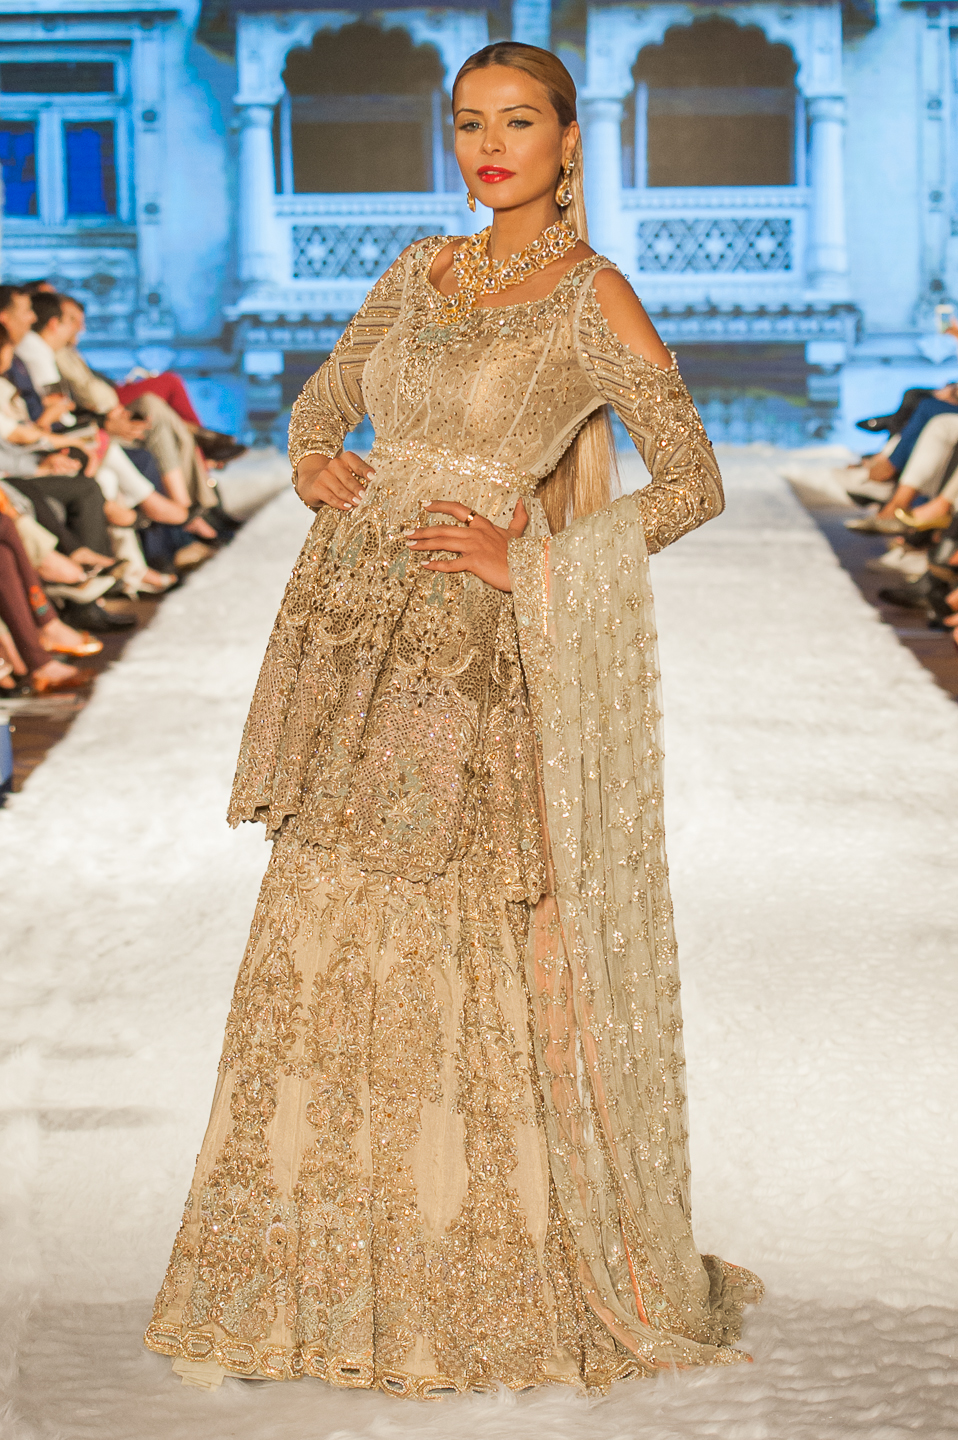 Rani Eman - Pakistan Fashion Week London - Photography by Shahid Malik